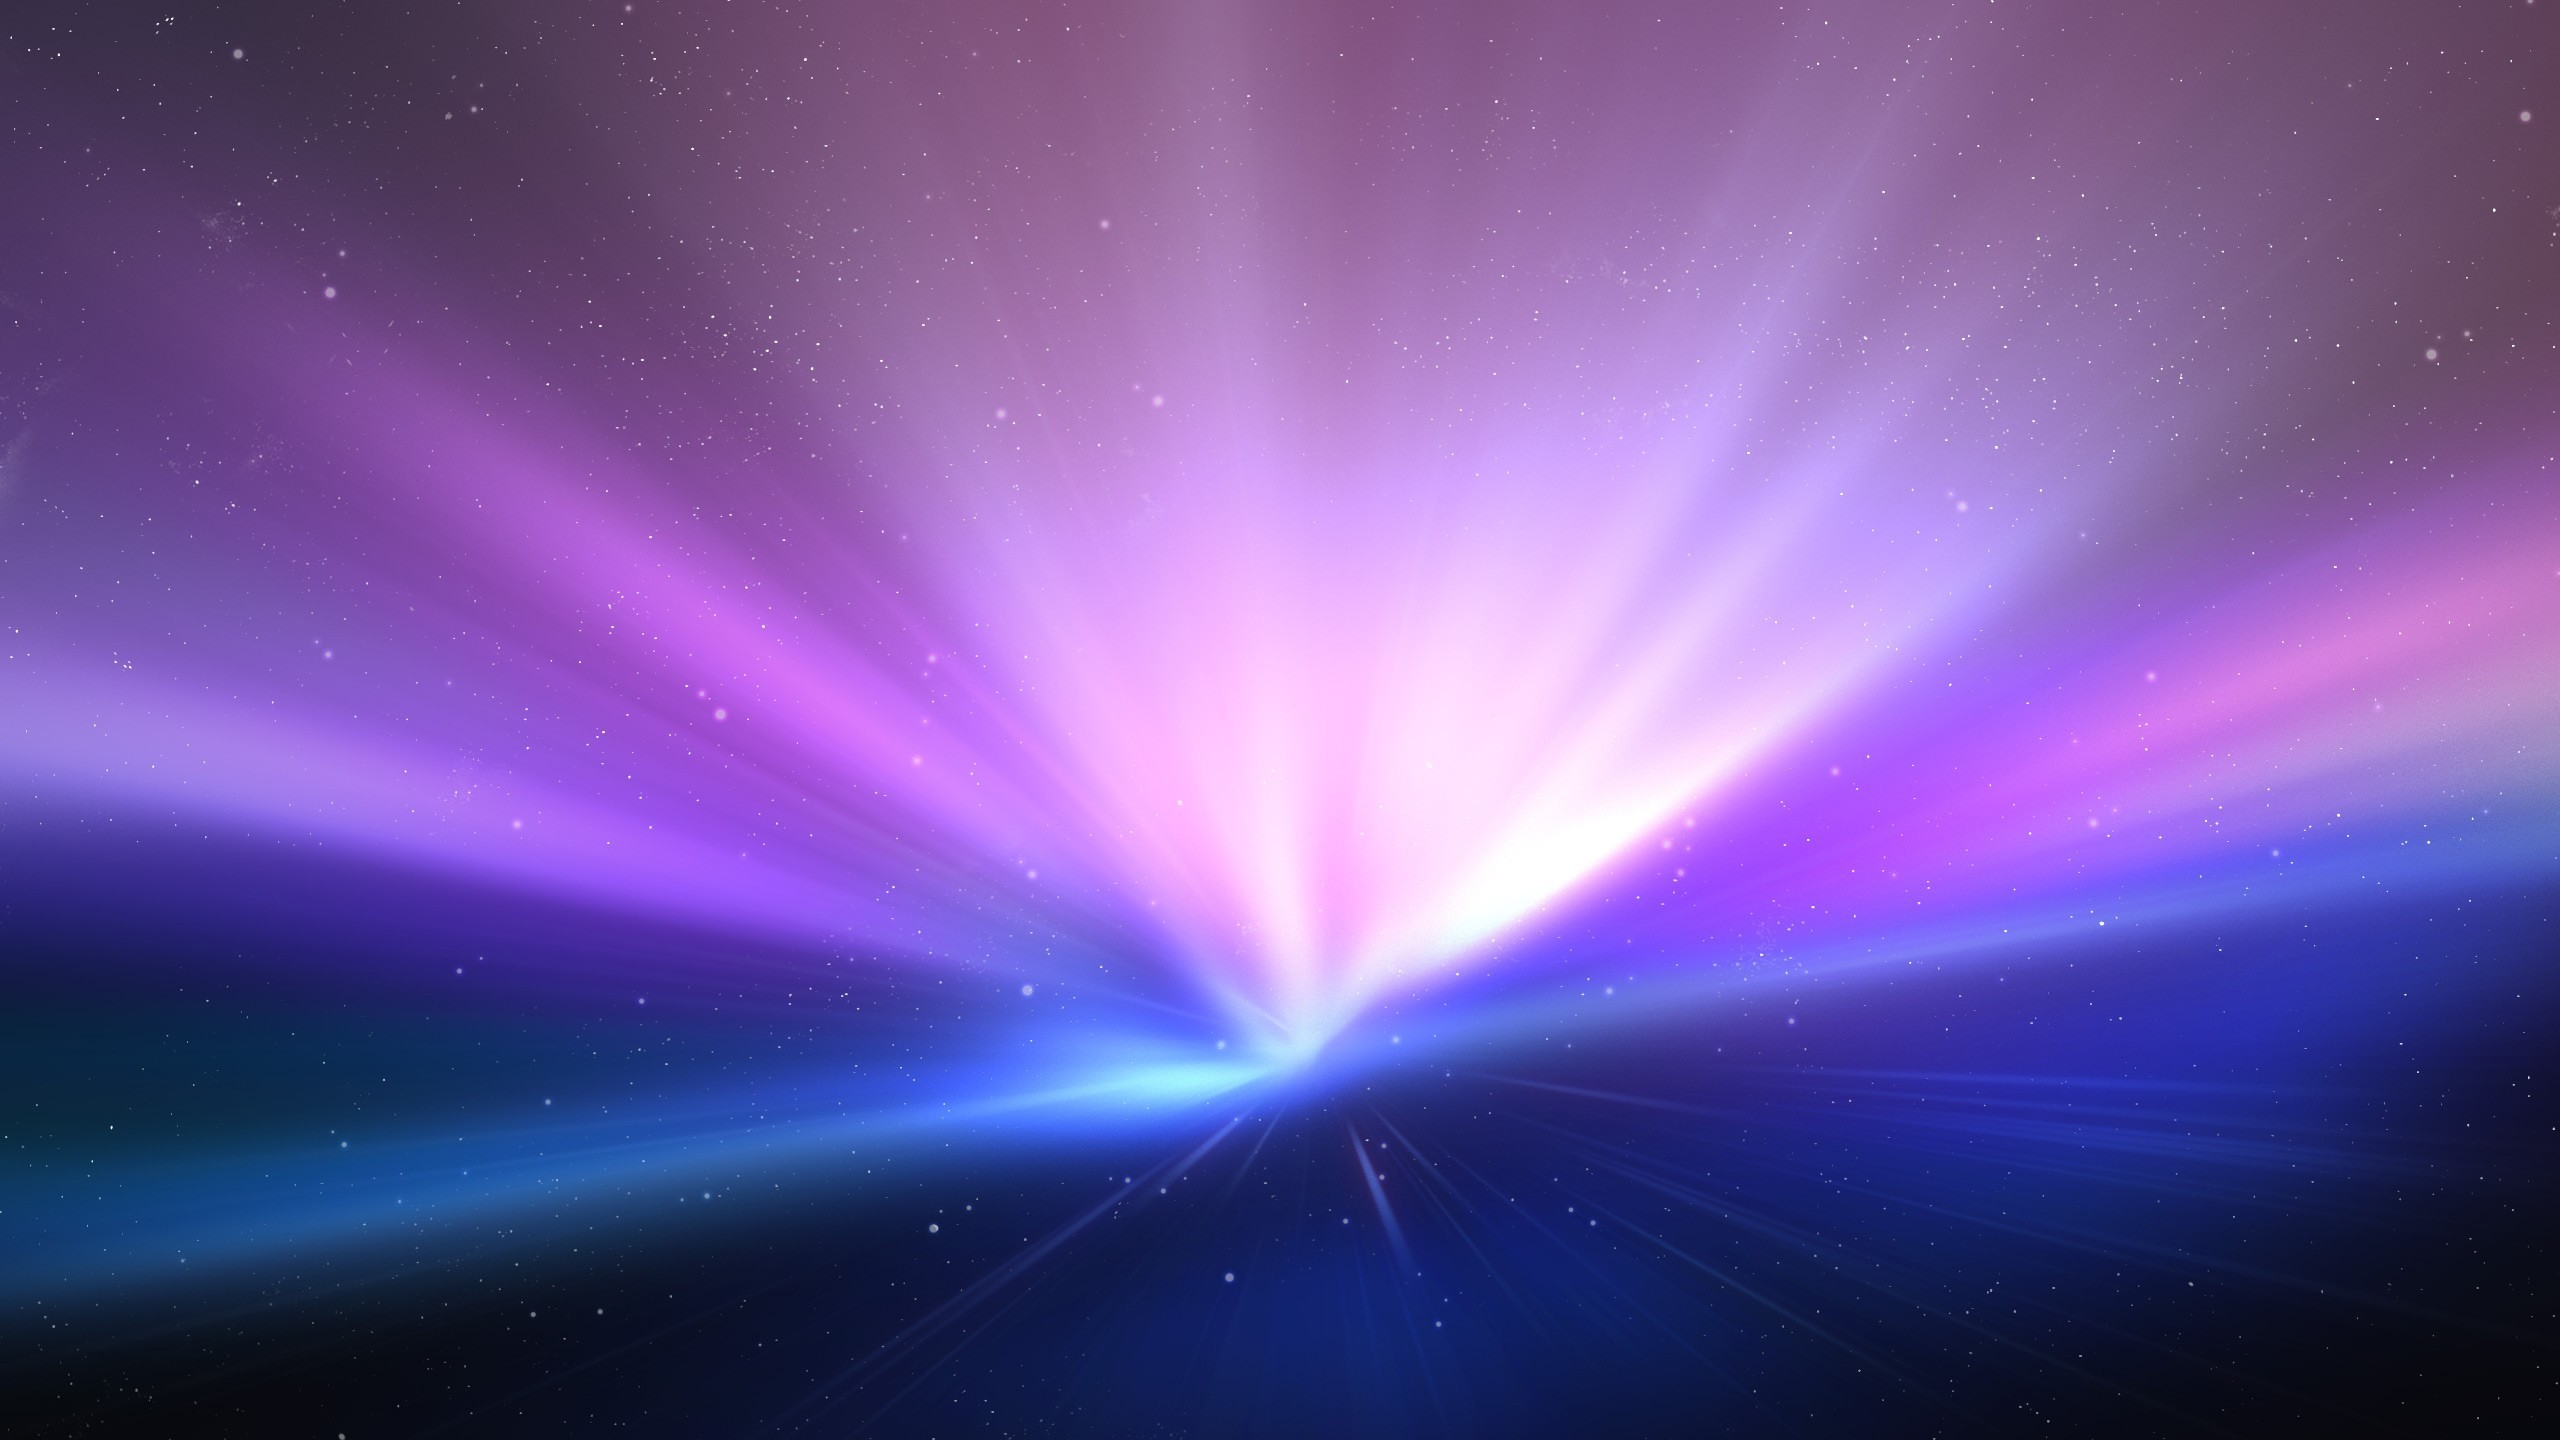 Purple Outer Space Wallpaper